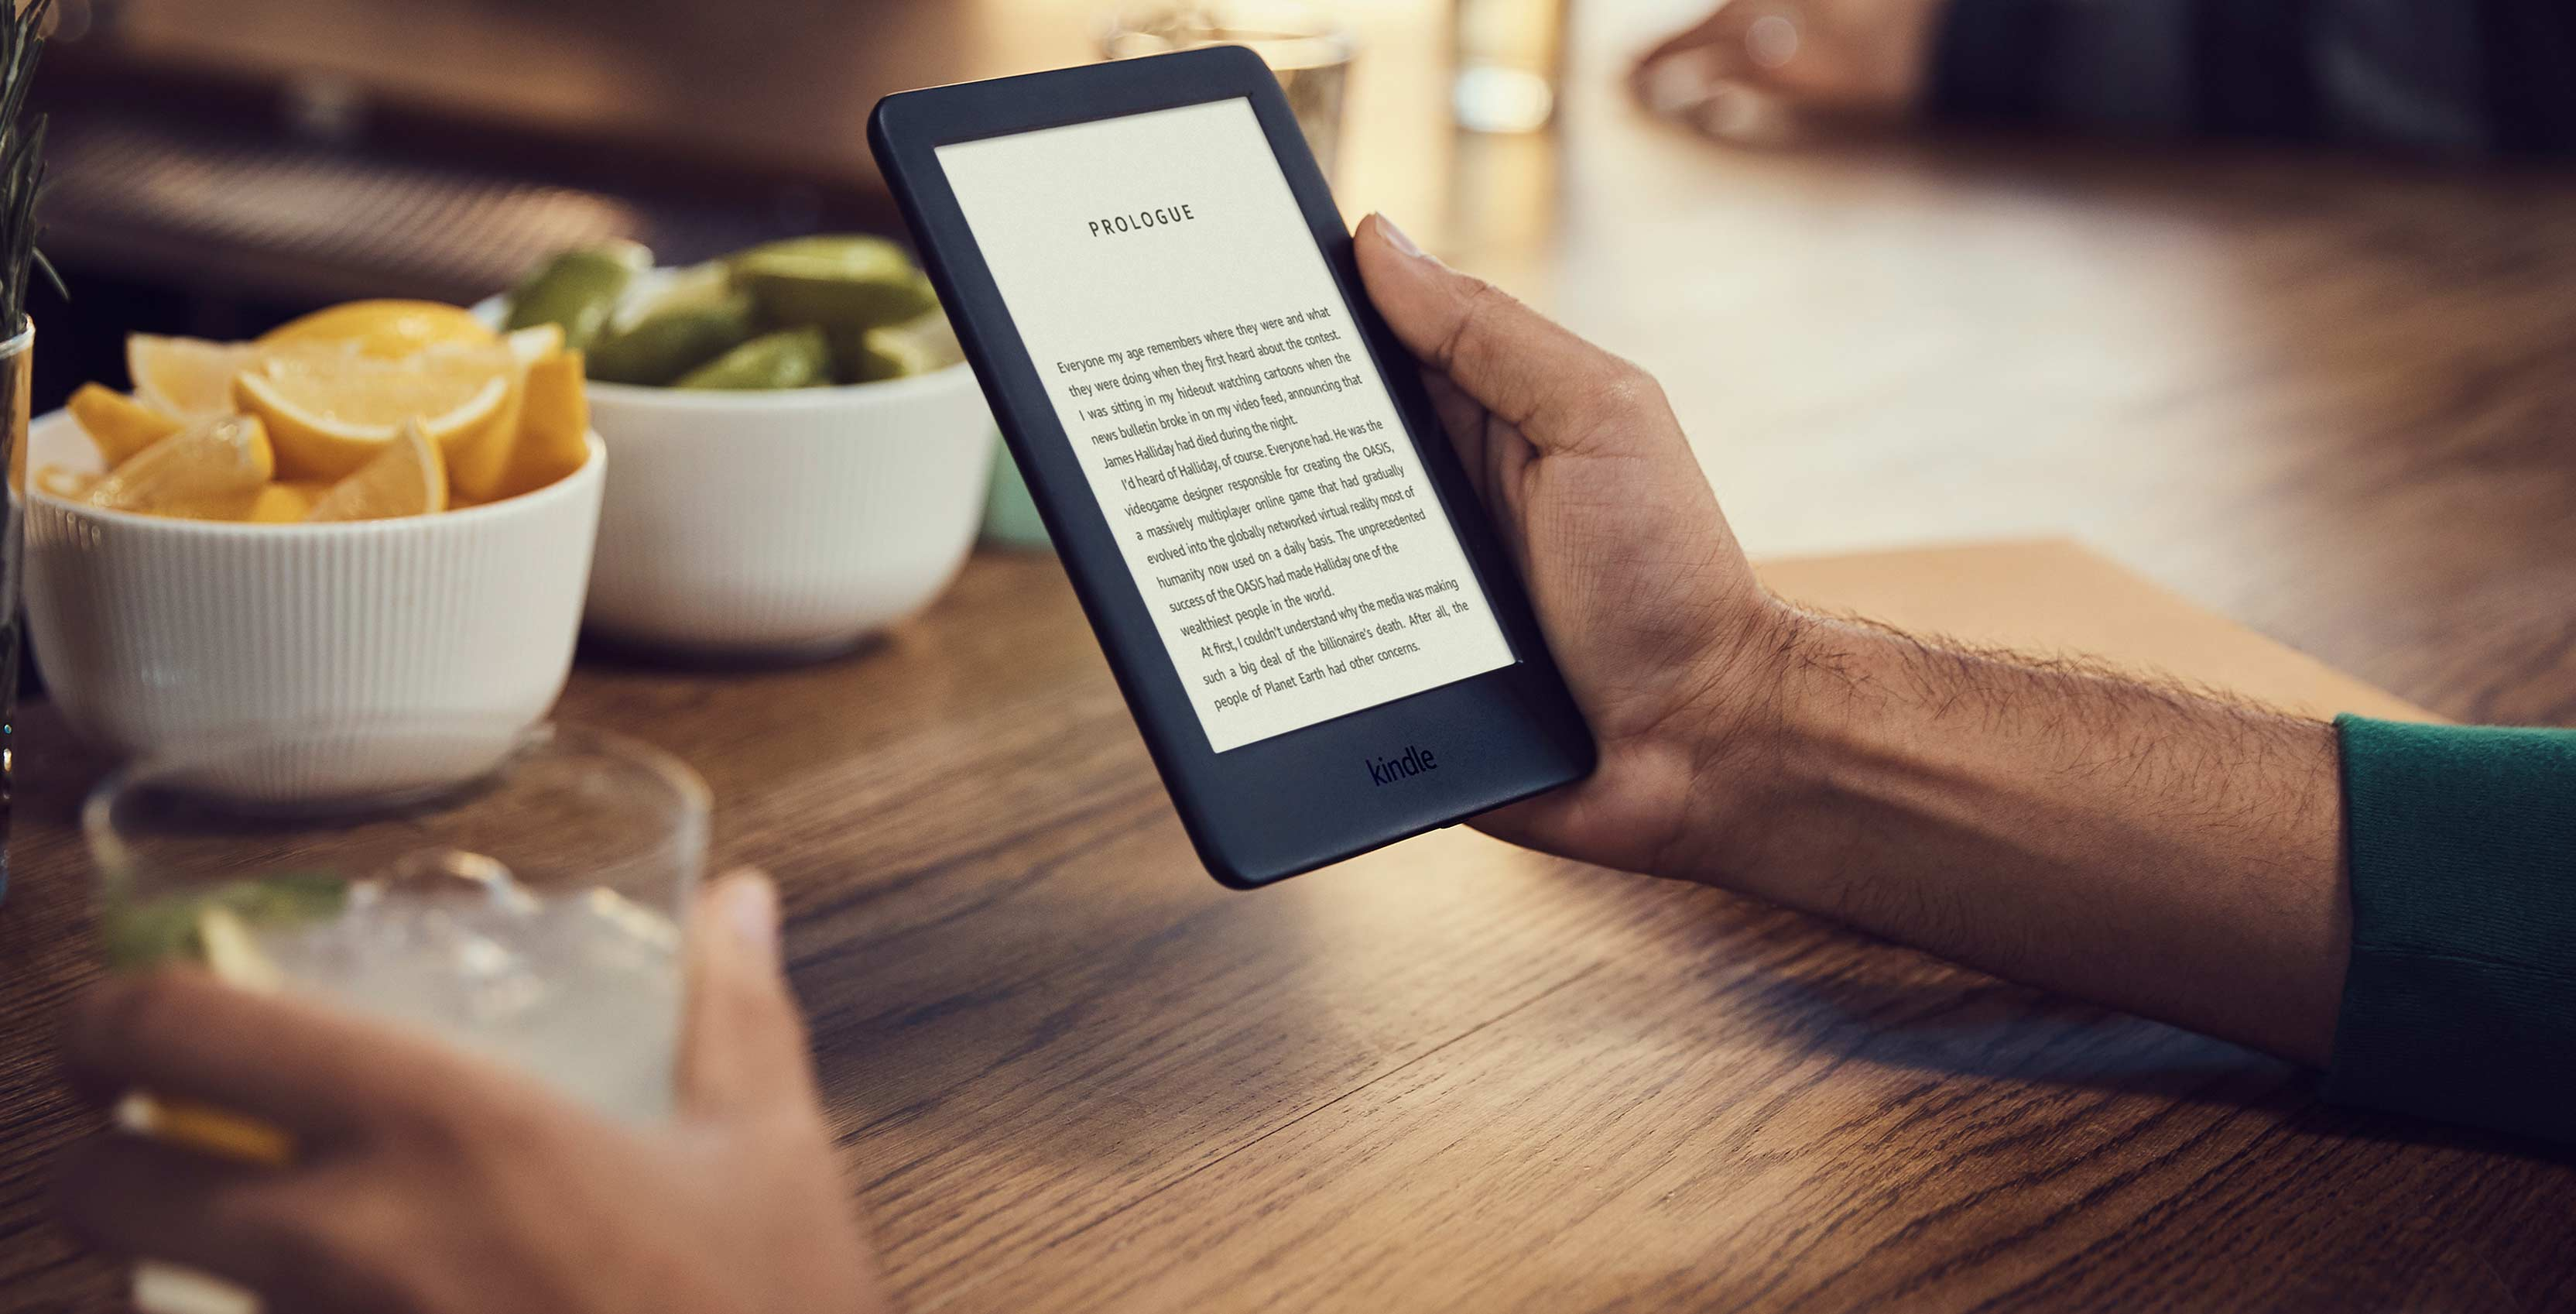 The new Amazon Kindle with adjustable front light